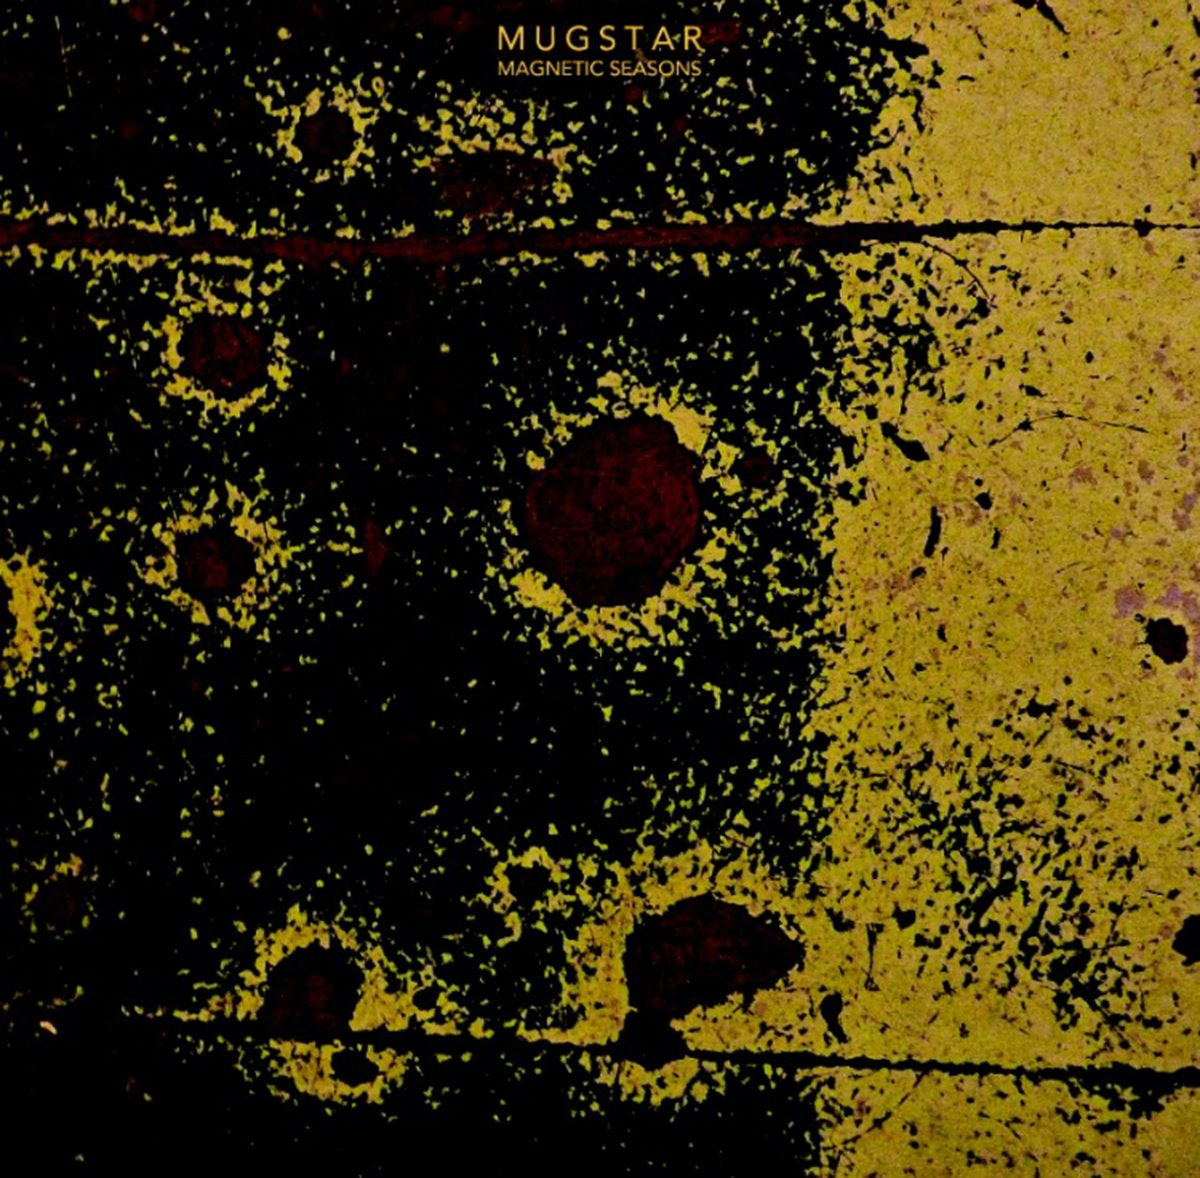 mugstar-magnetic-seasons